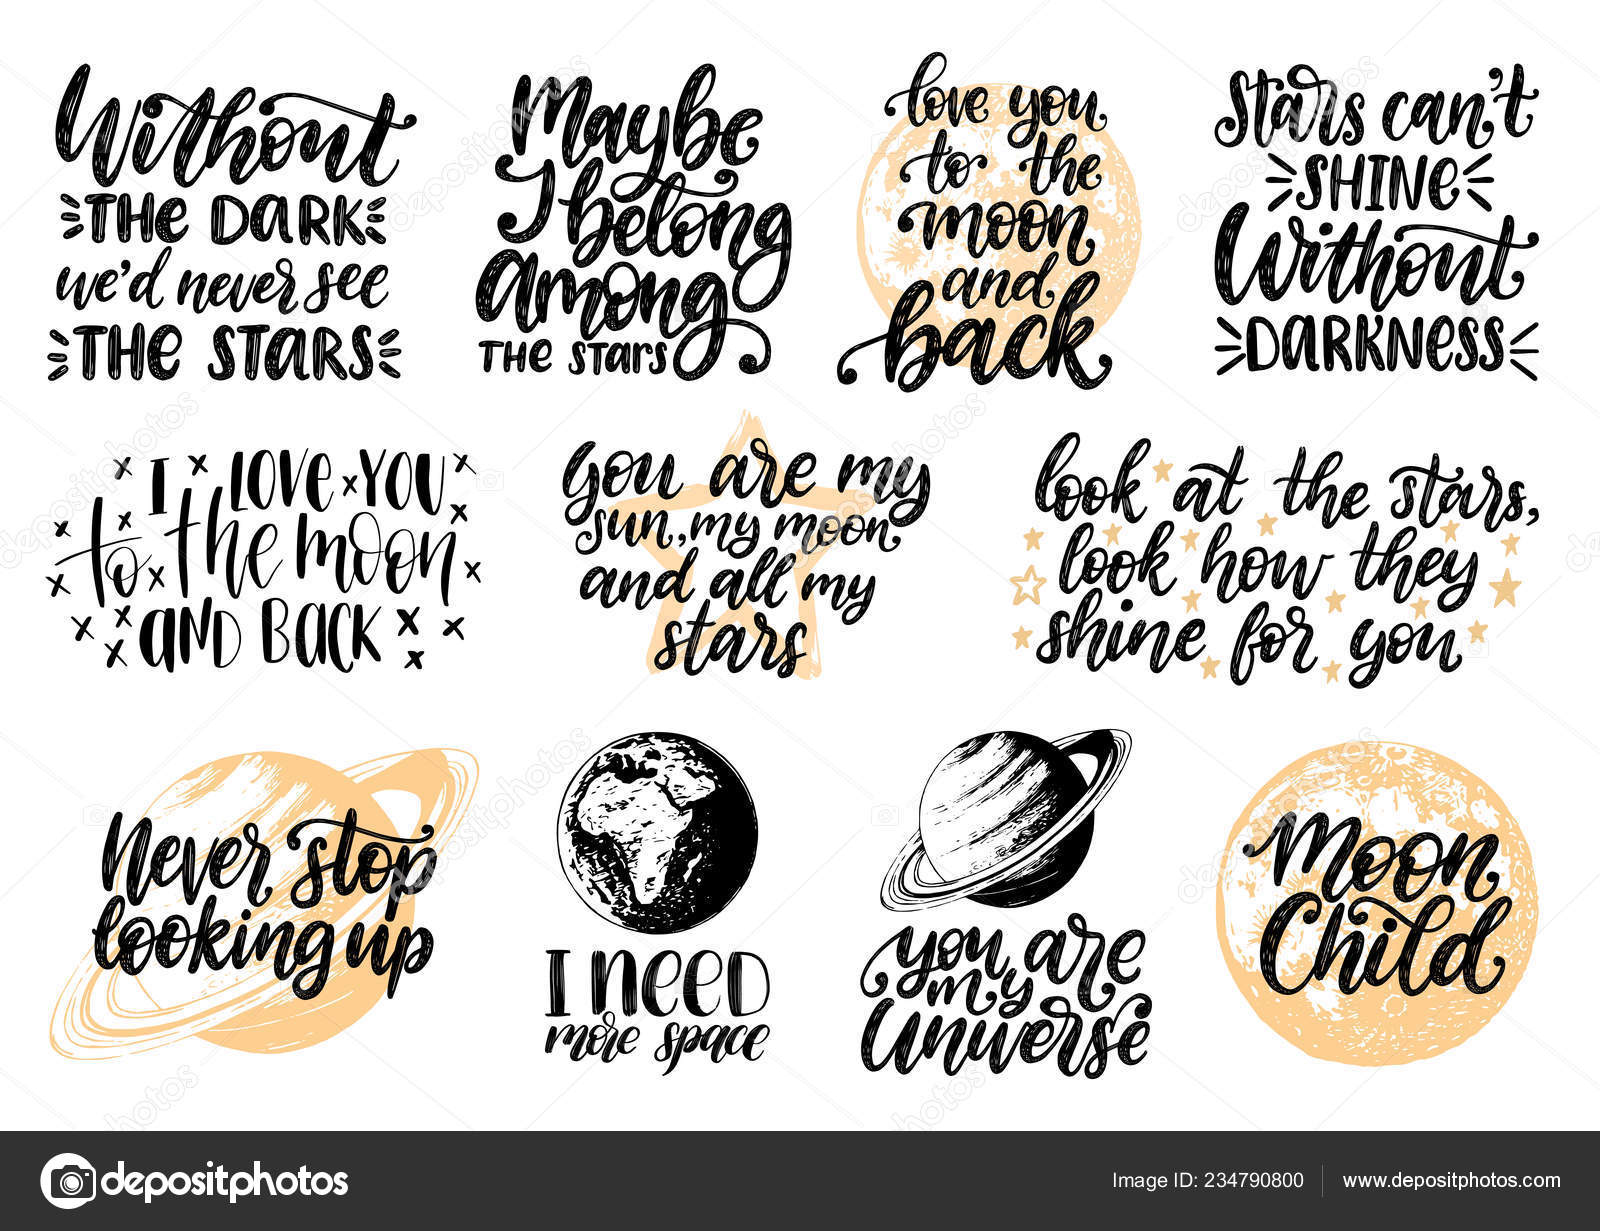 Hand Lettering Motivational Phrases Moon Child Need More ...